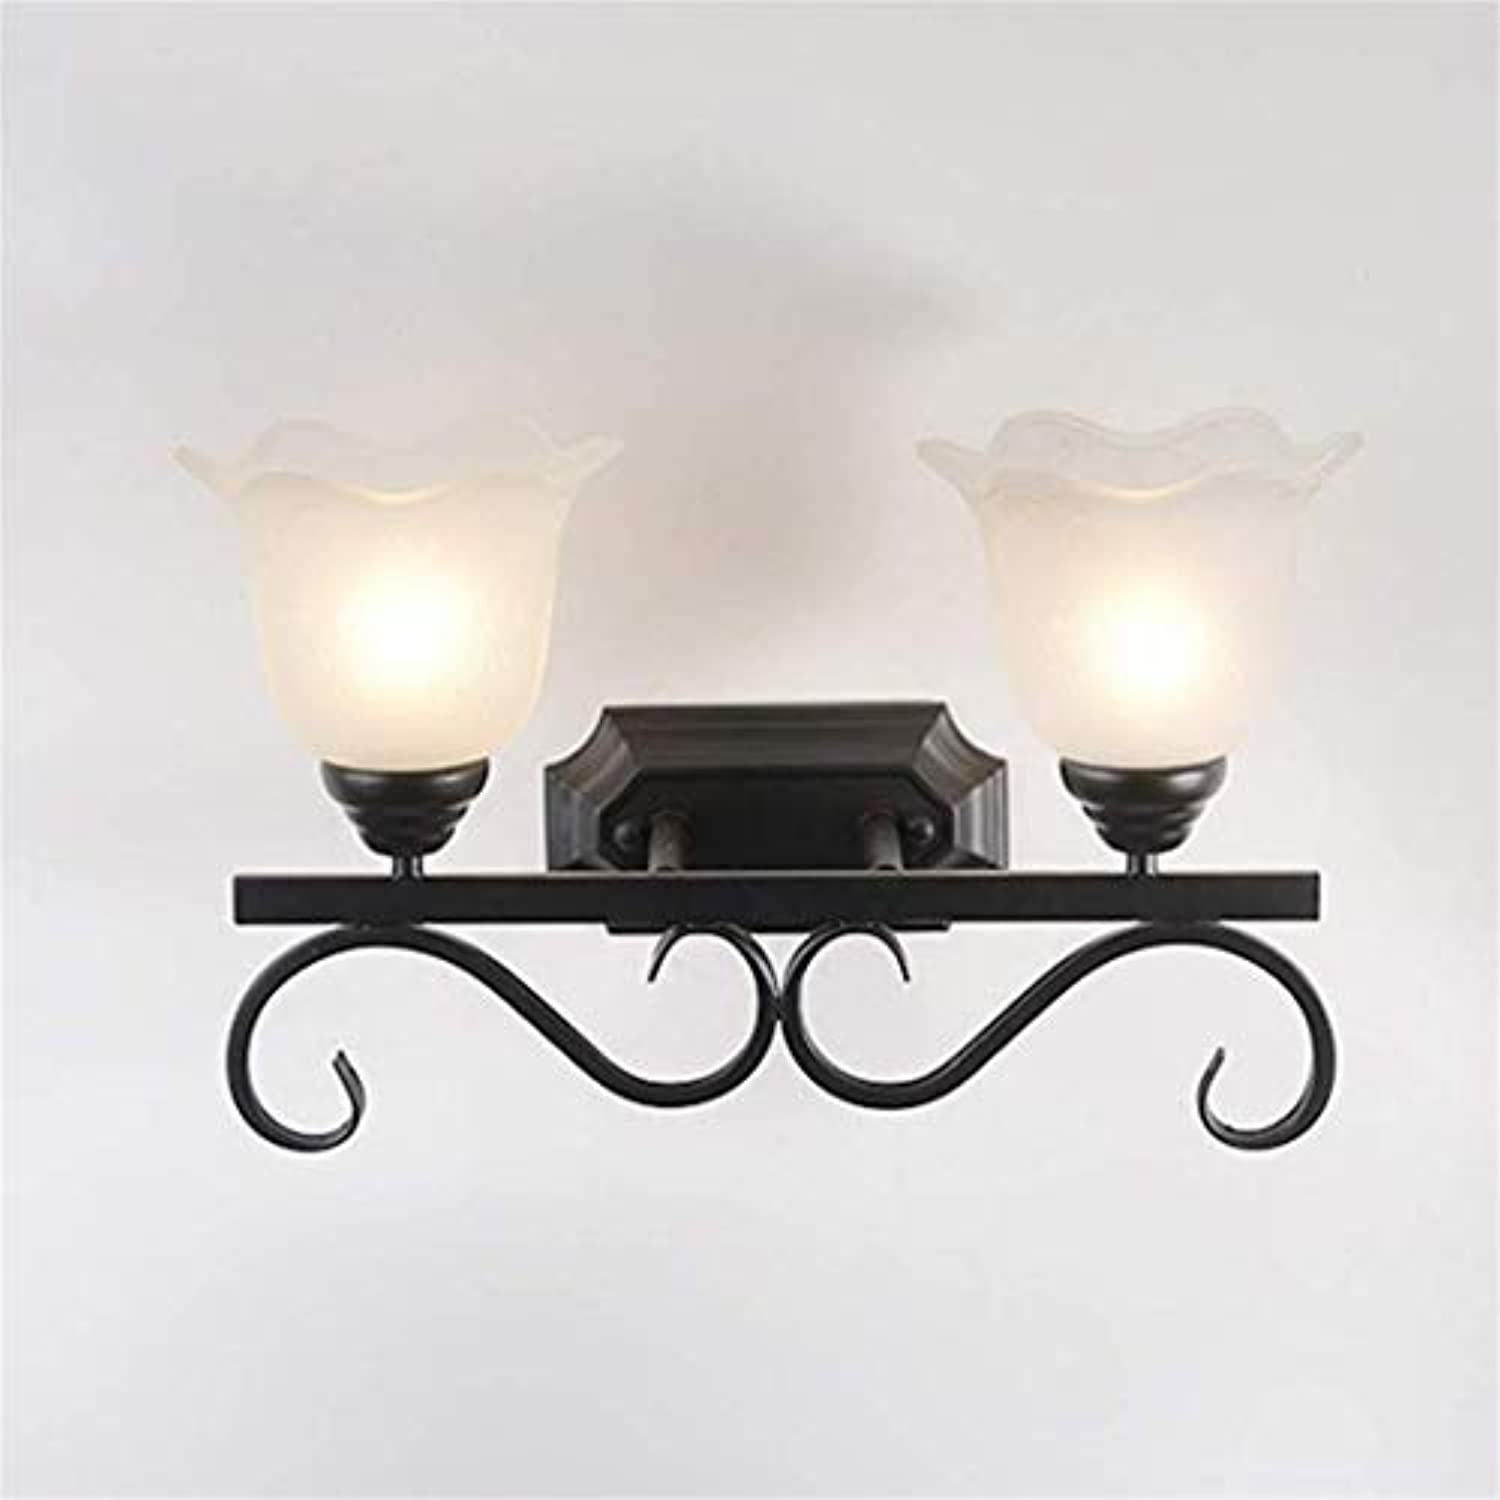 Lichtmodern Minimalist Wrought Iron Wall Lamp, Bedroom, Bedside, Hotel Lamp,Monochromeled,Doublehead [Energy Class A]